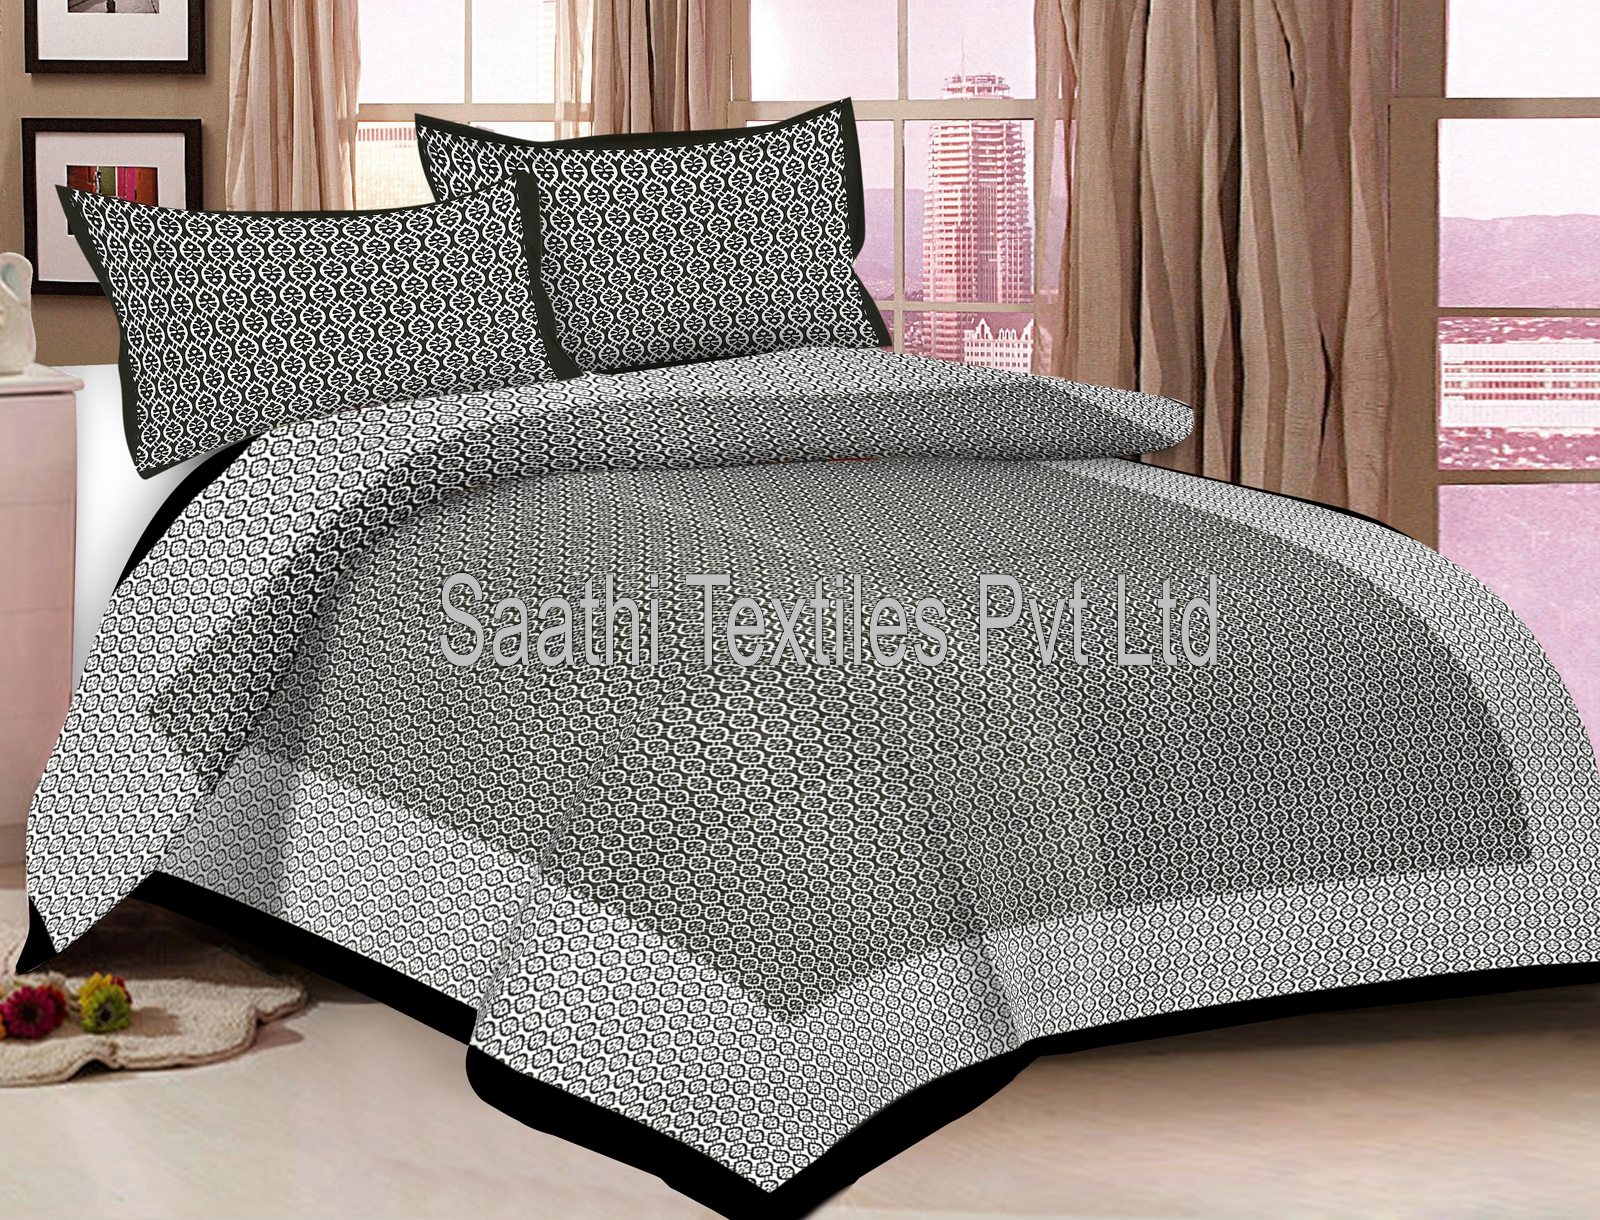 Printed Jaipuri Double Bed Sheets